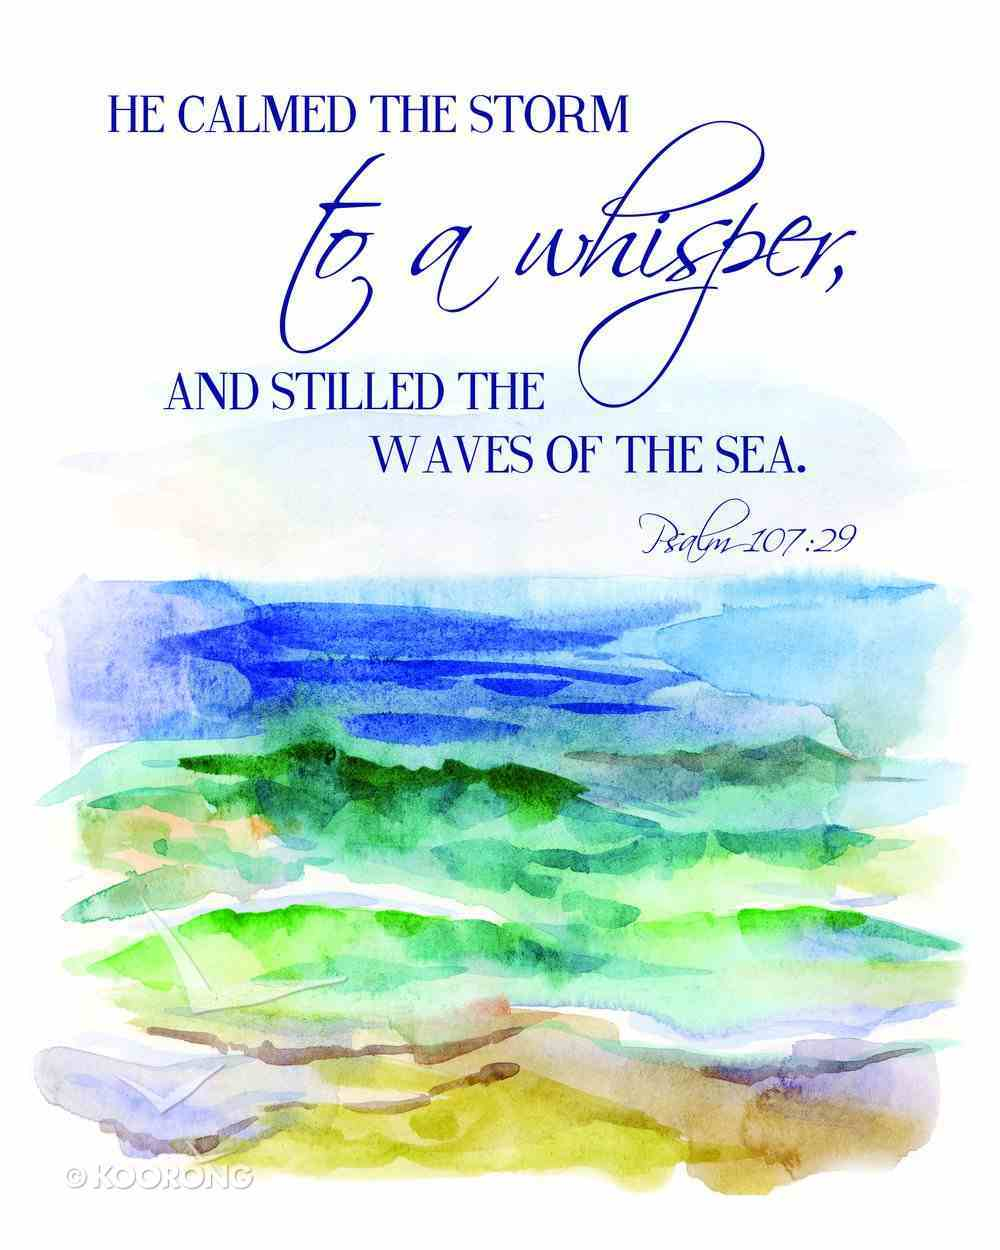 Medium Framed Print: Ocean Waves - He Calmed the Storm to a Whisper Psalm 107:29 Plaque